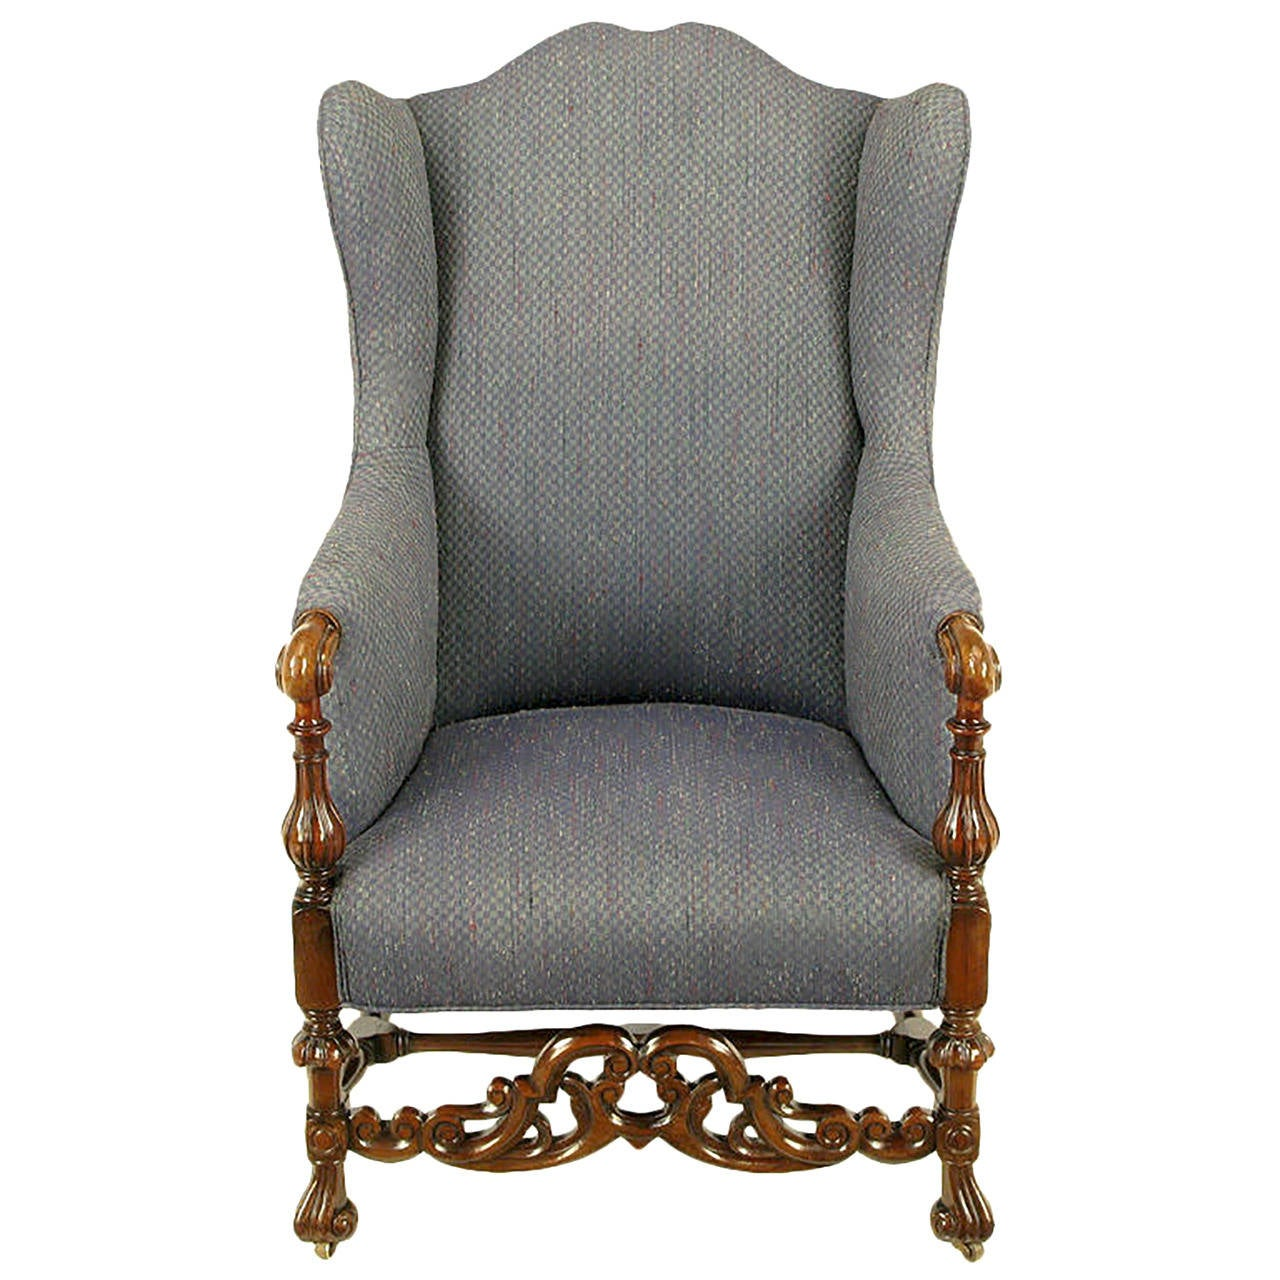 Italian Regency Upholstered Wing Chair with Carved Wood Frame